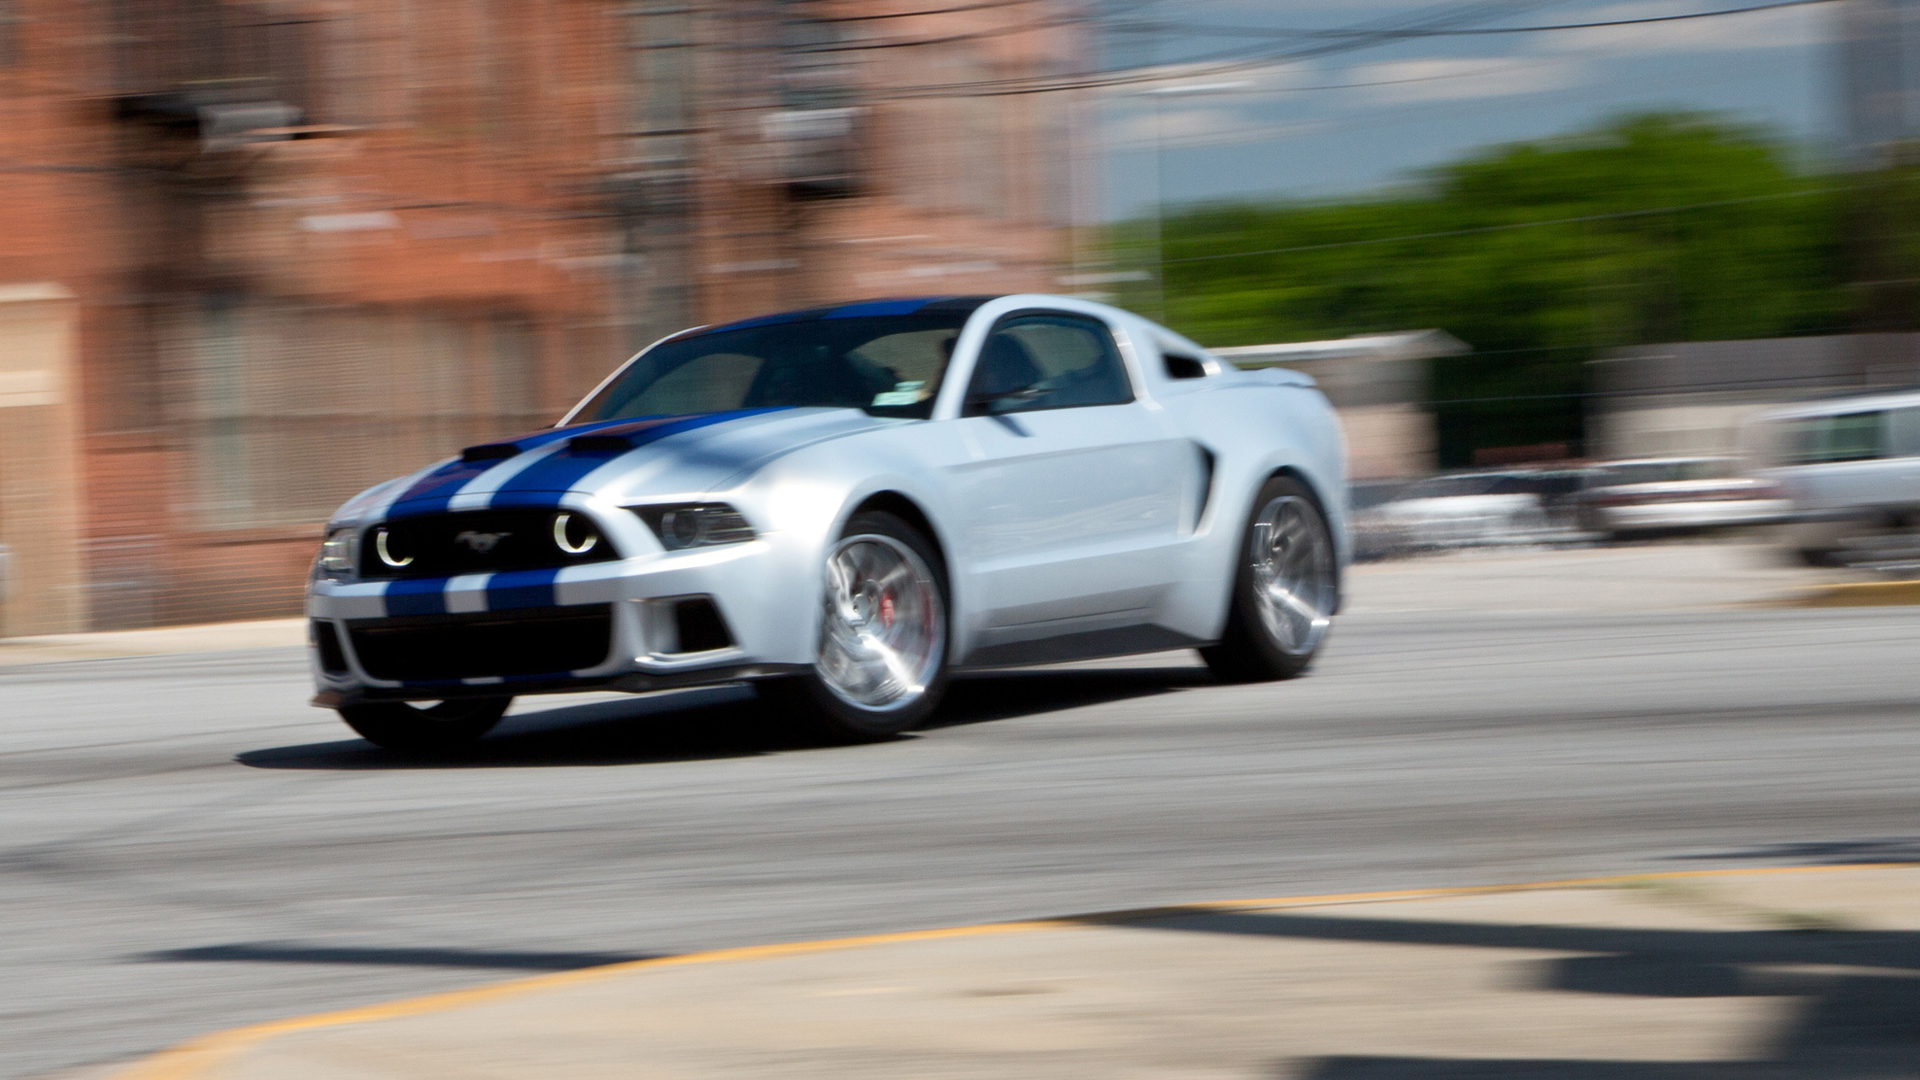 shelby mustang need for speed movie 0l wallpaper hd